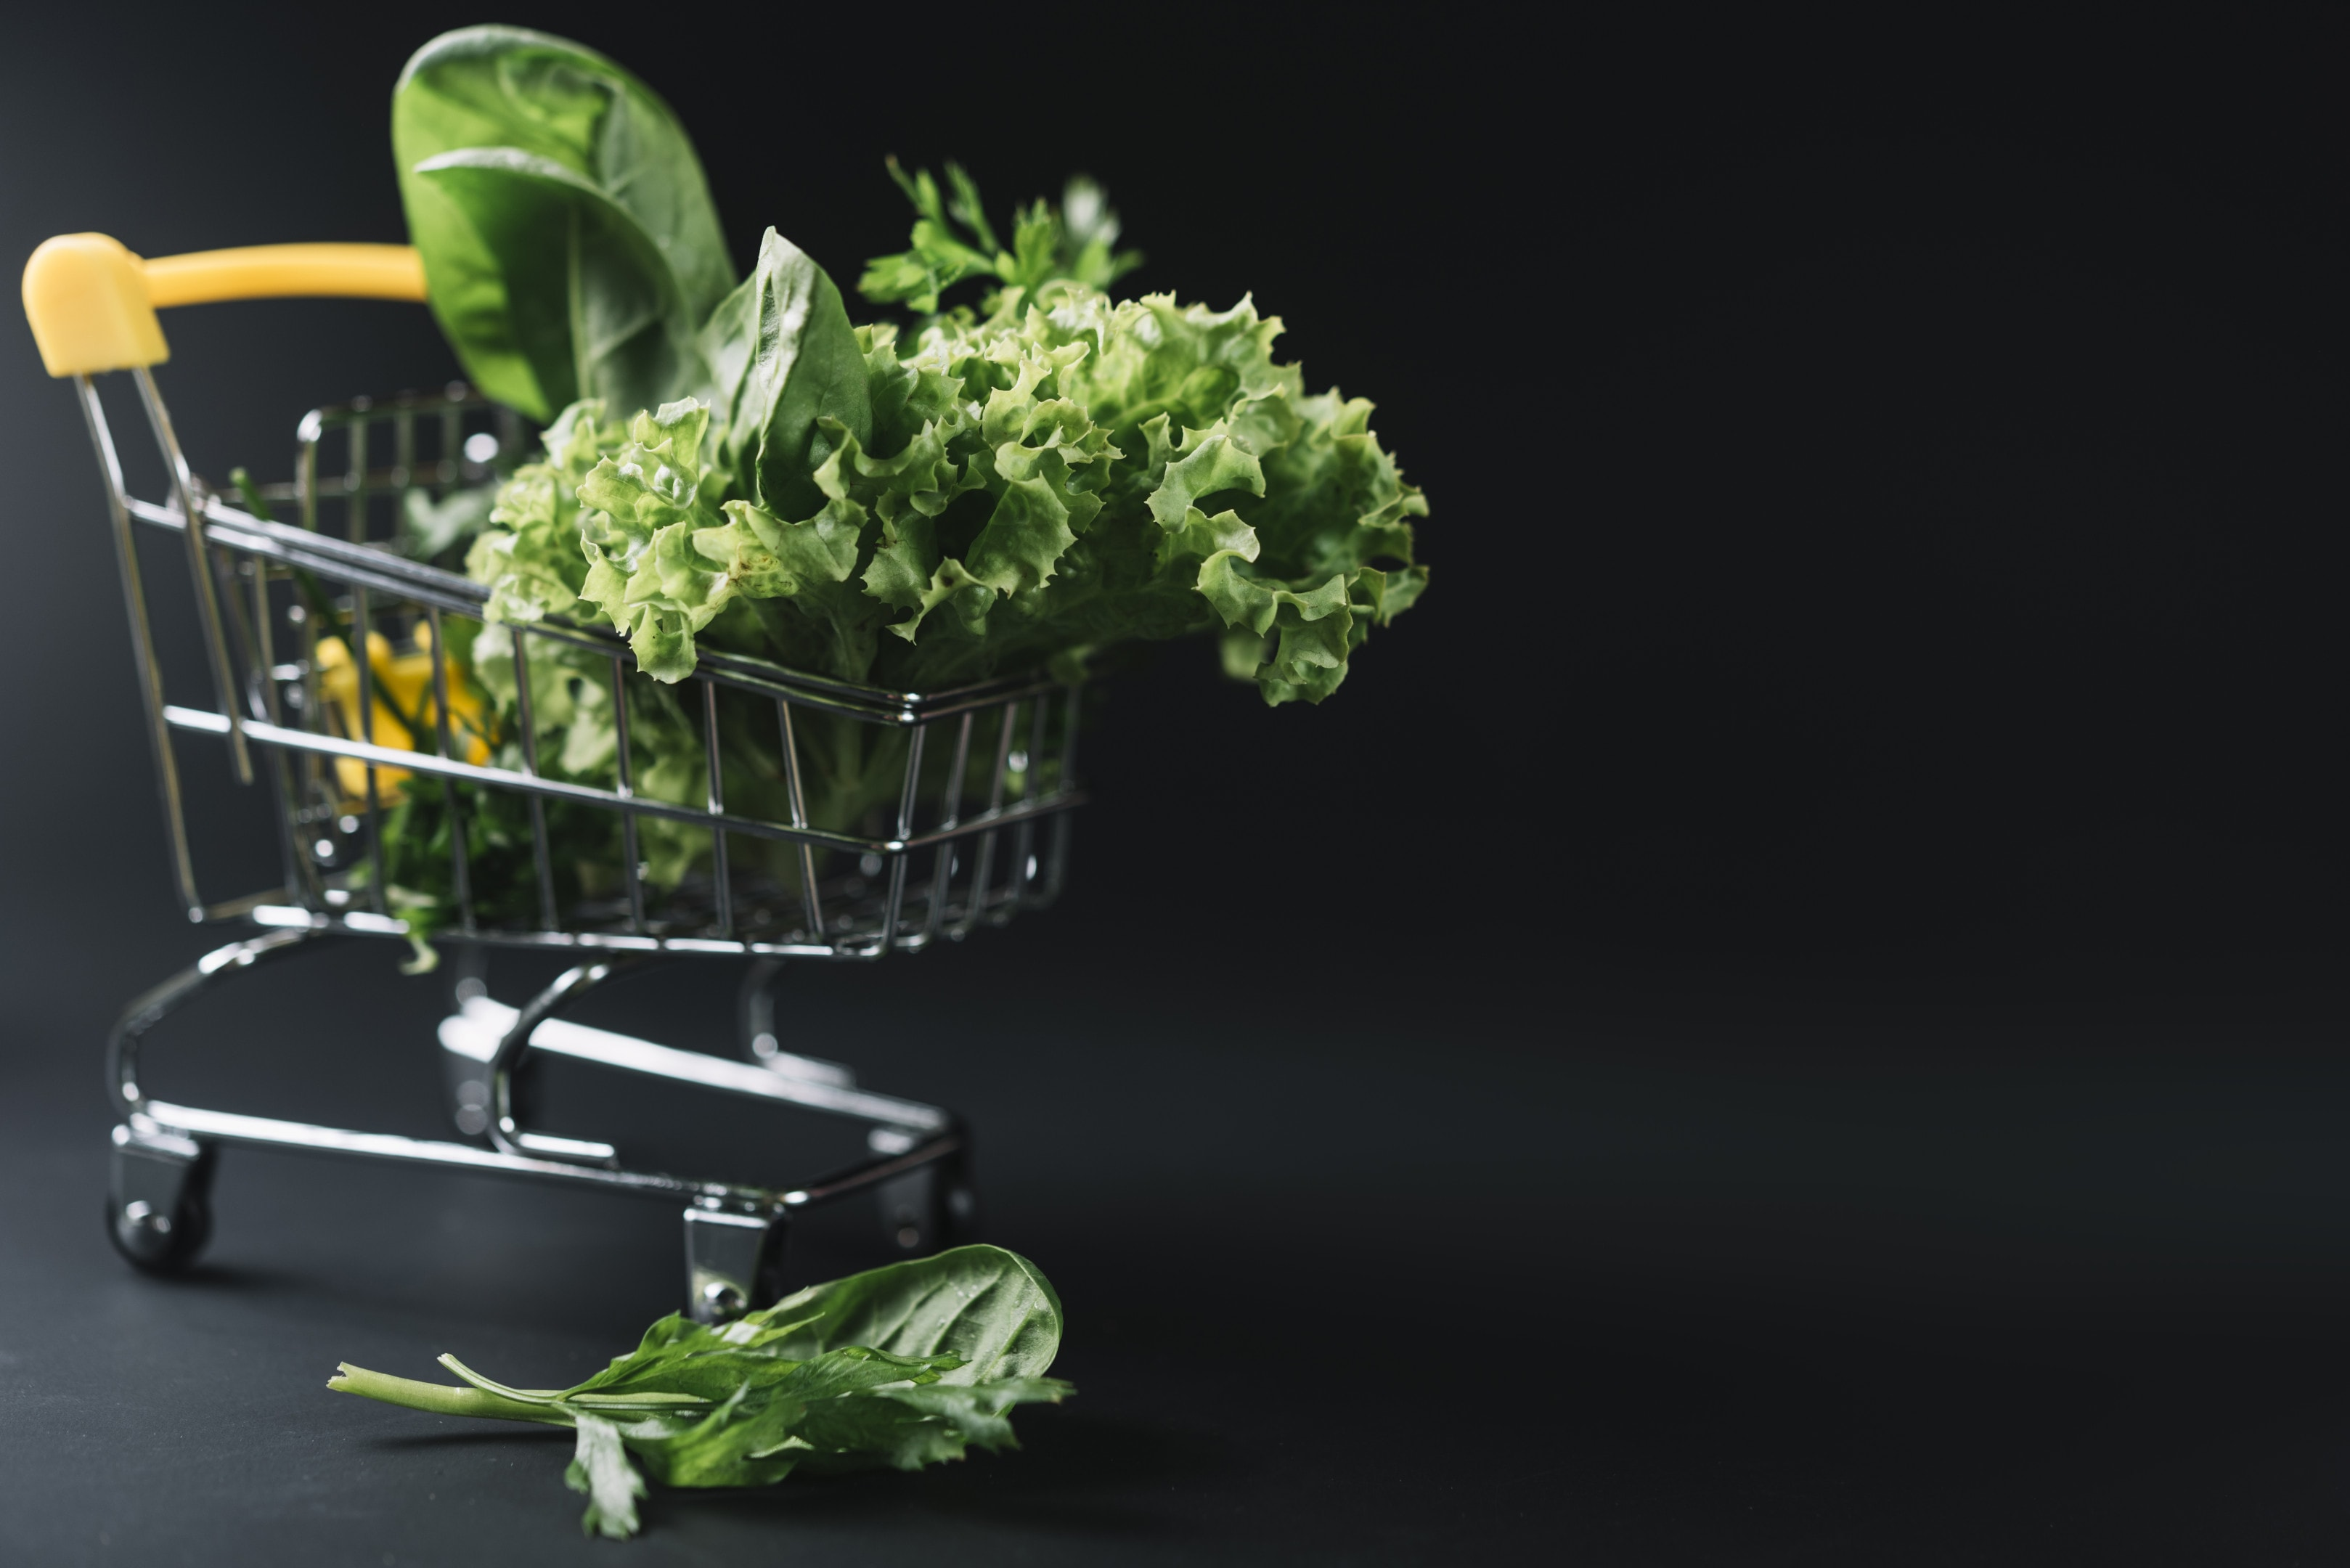 Fresh leafy green vegetables in small shopping cart on dark background